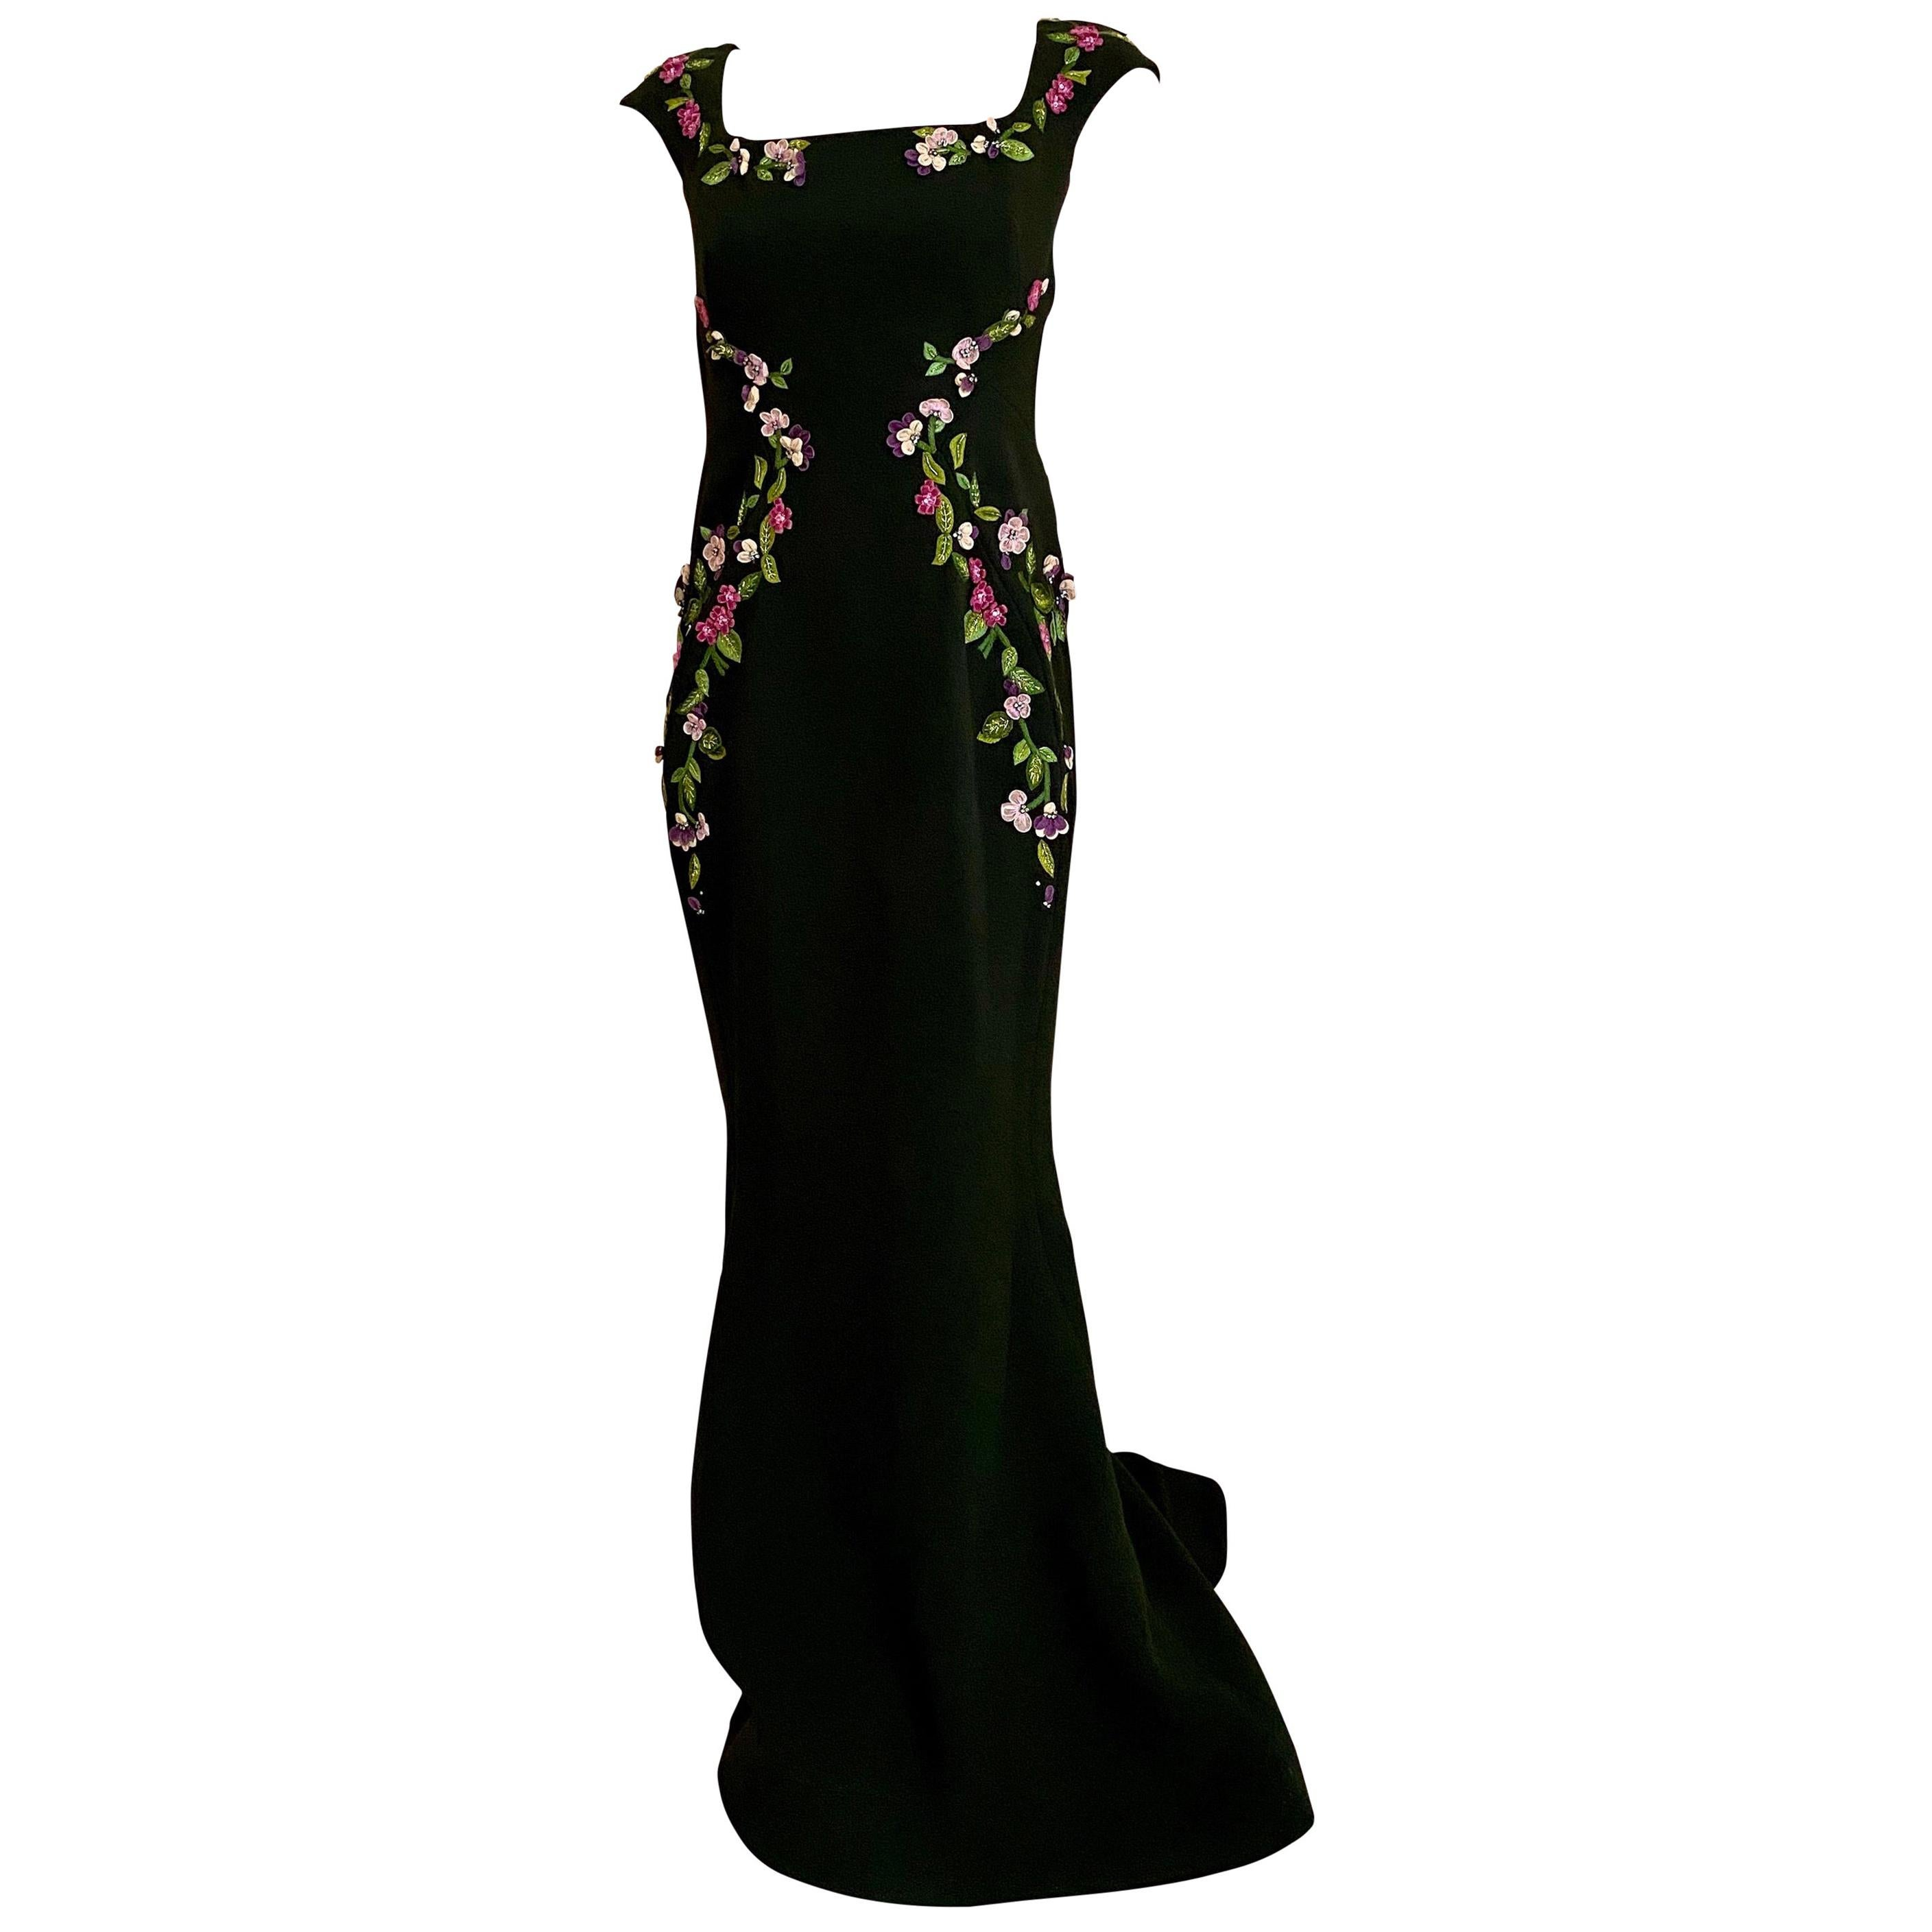 Zac Posen Green Gown with Floral Embroidery